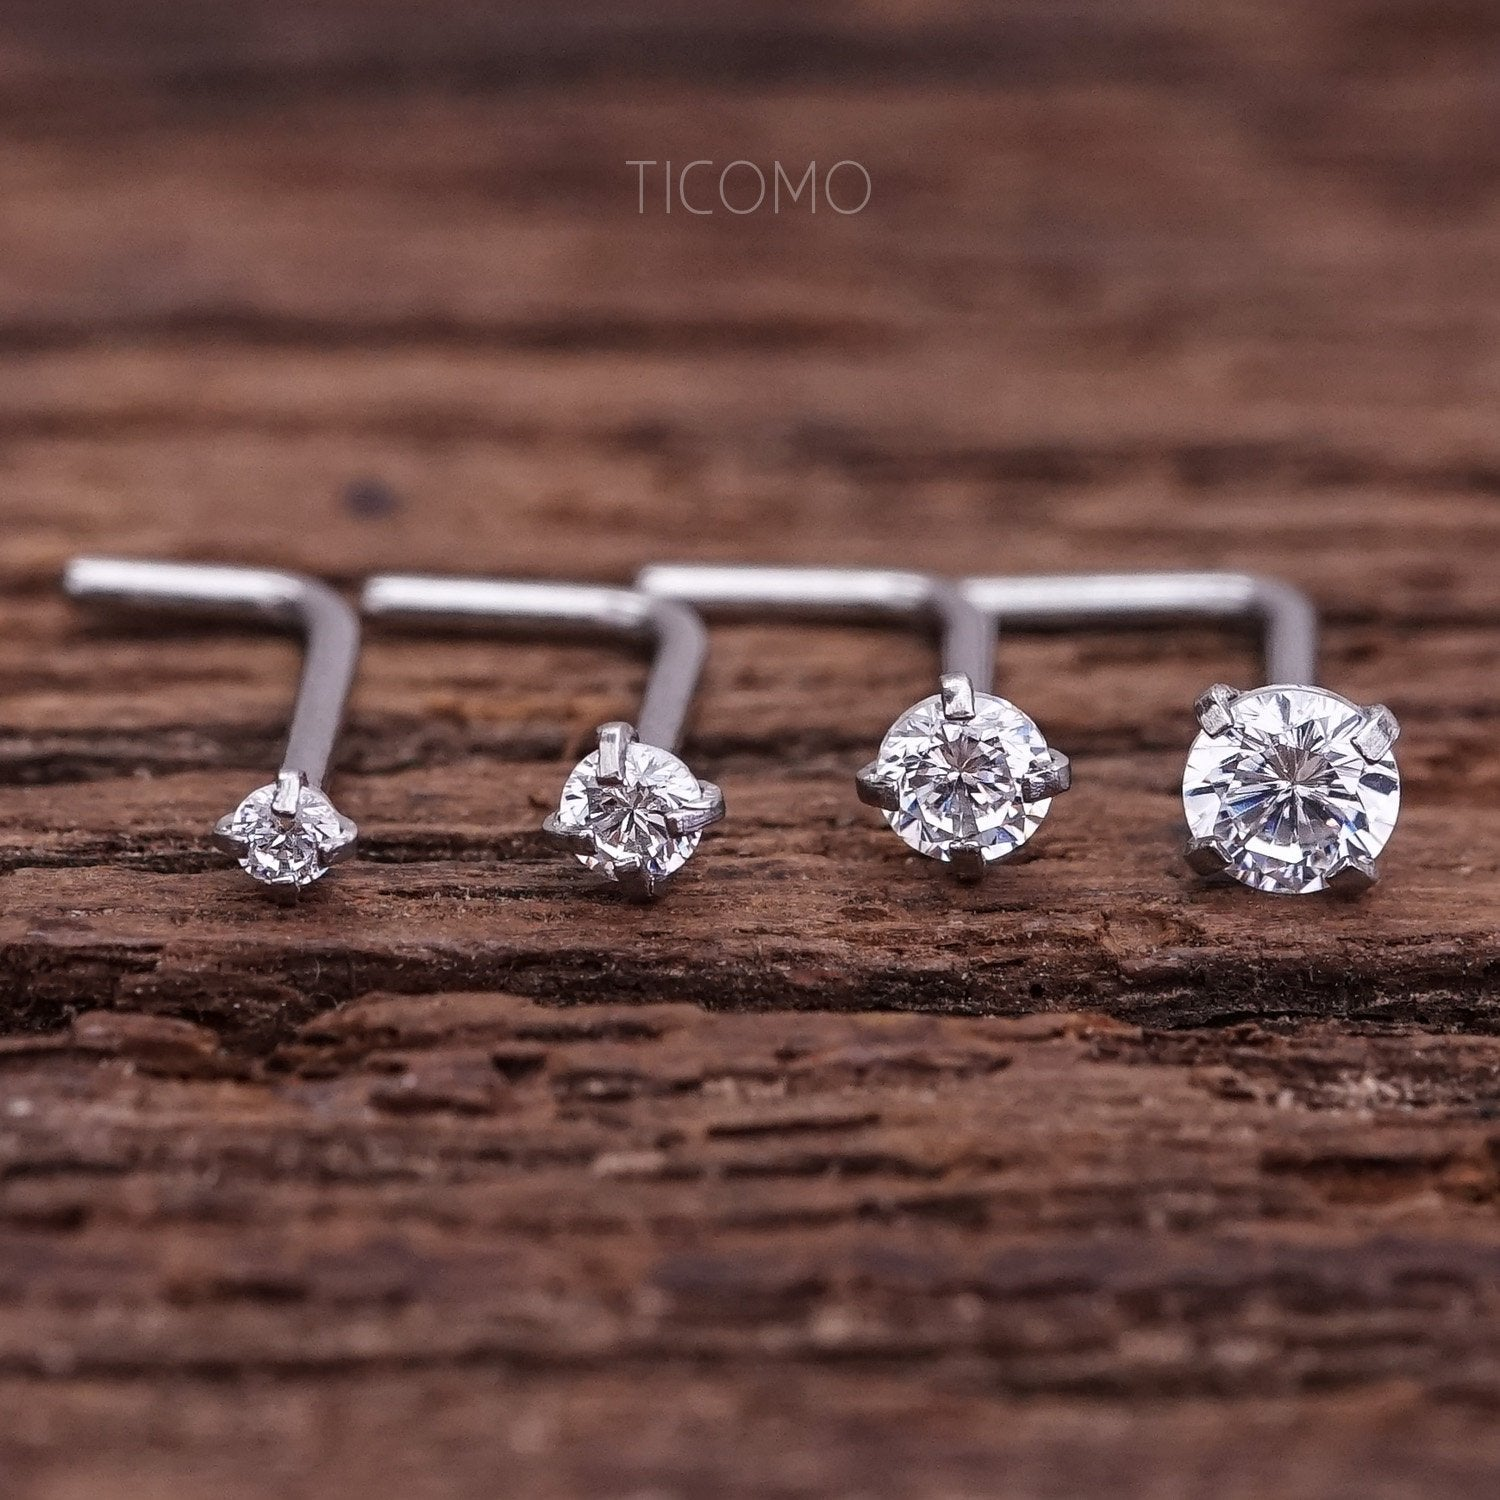 Nose Stud Nose Piercing Nose Ring Simple Base Silver Tiny Zircon 1.5mm 2mm Curve Post 20g